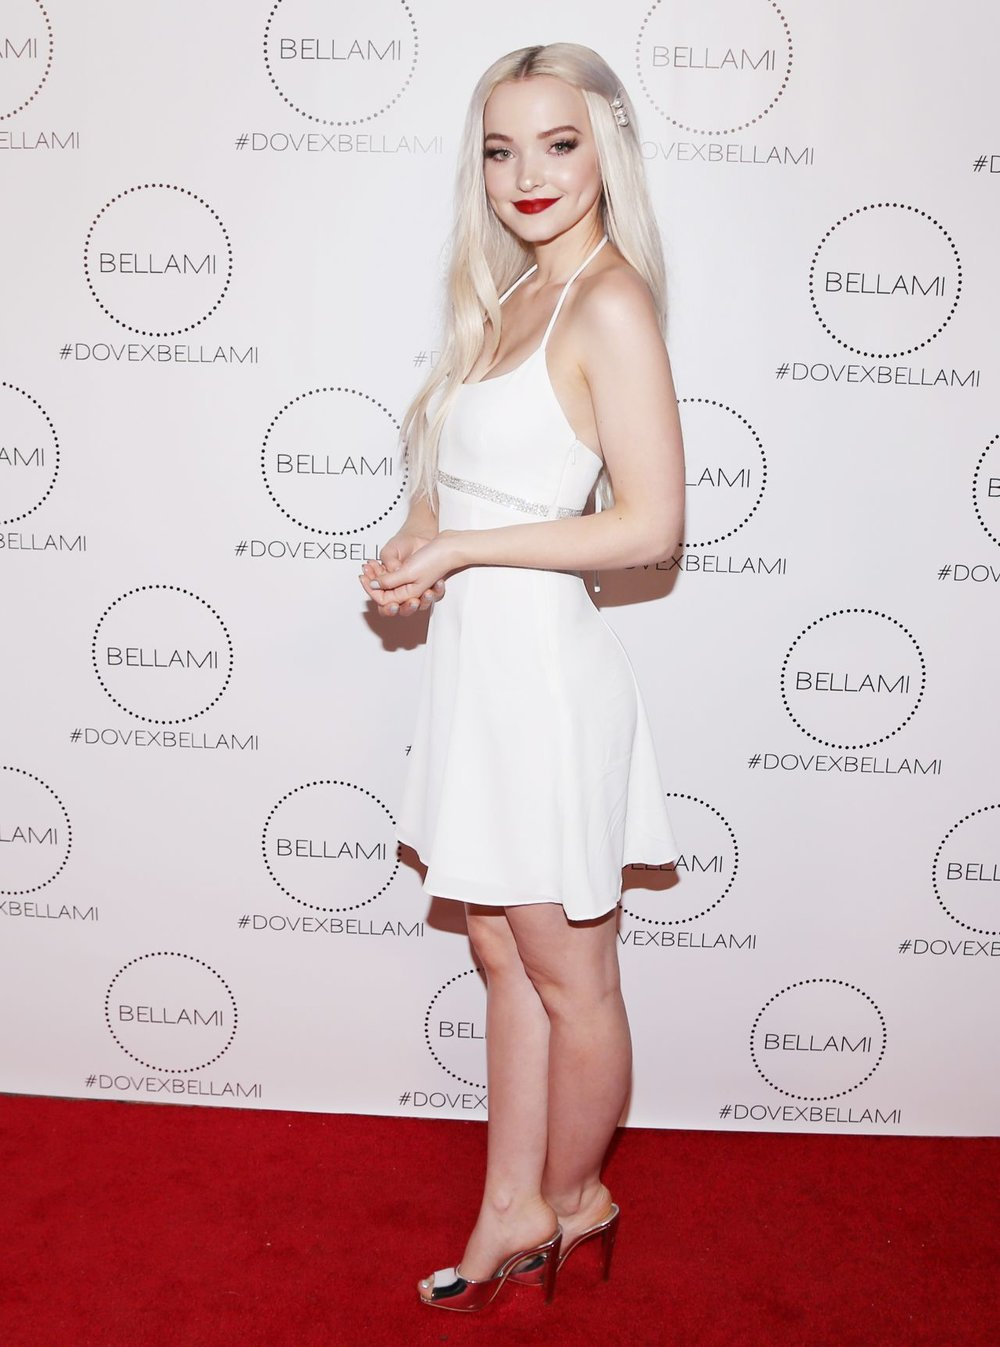 dove-cameron-dove-x-bellami-collection-launch-party-part-ii-0.jpg